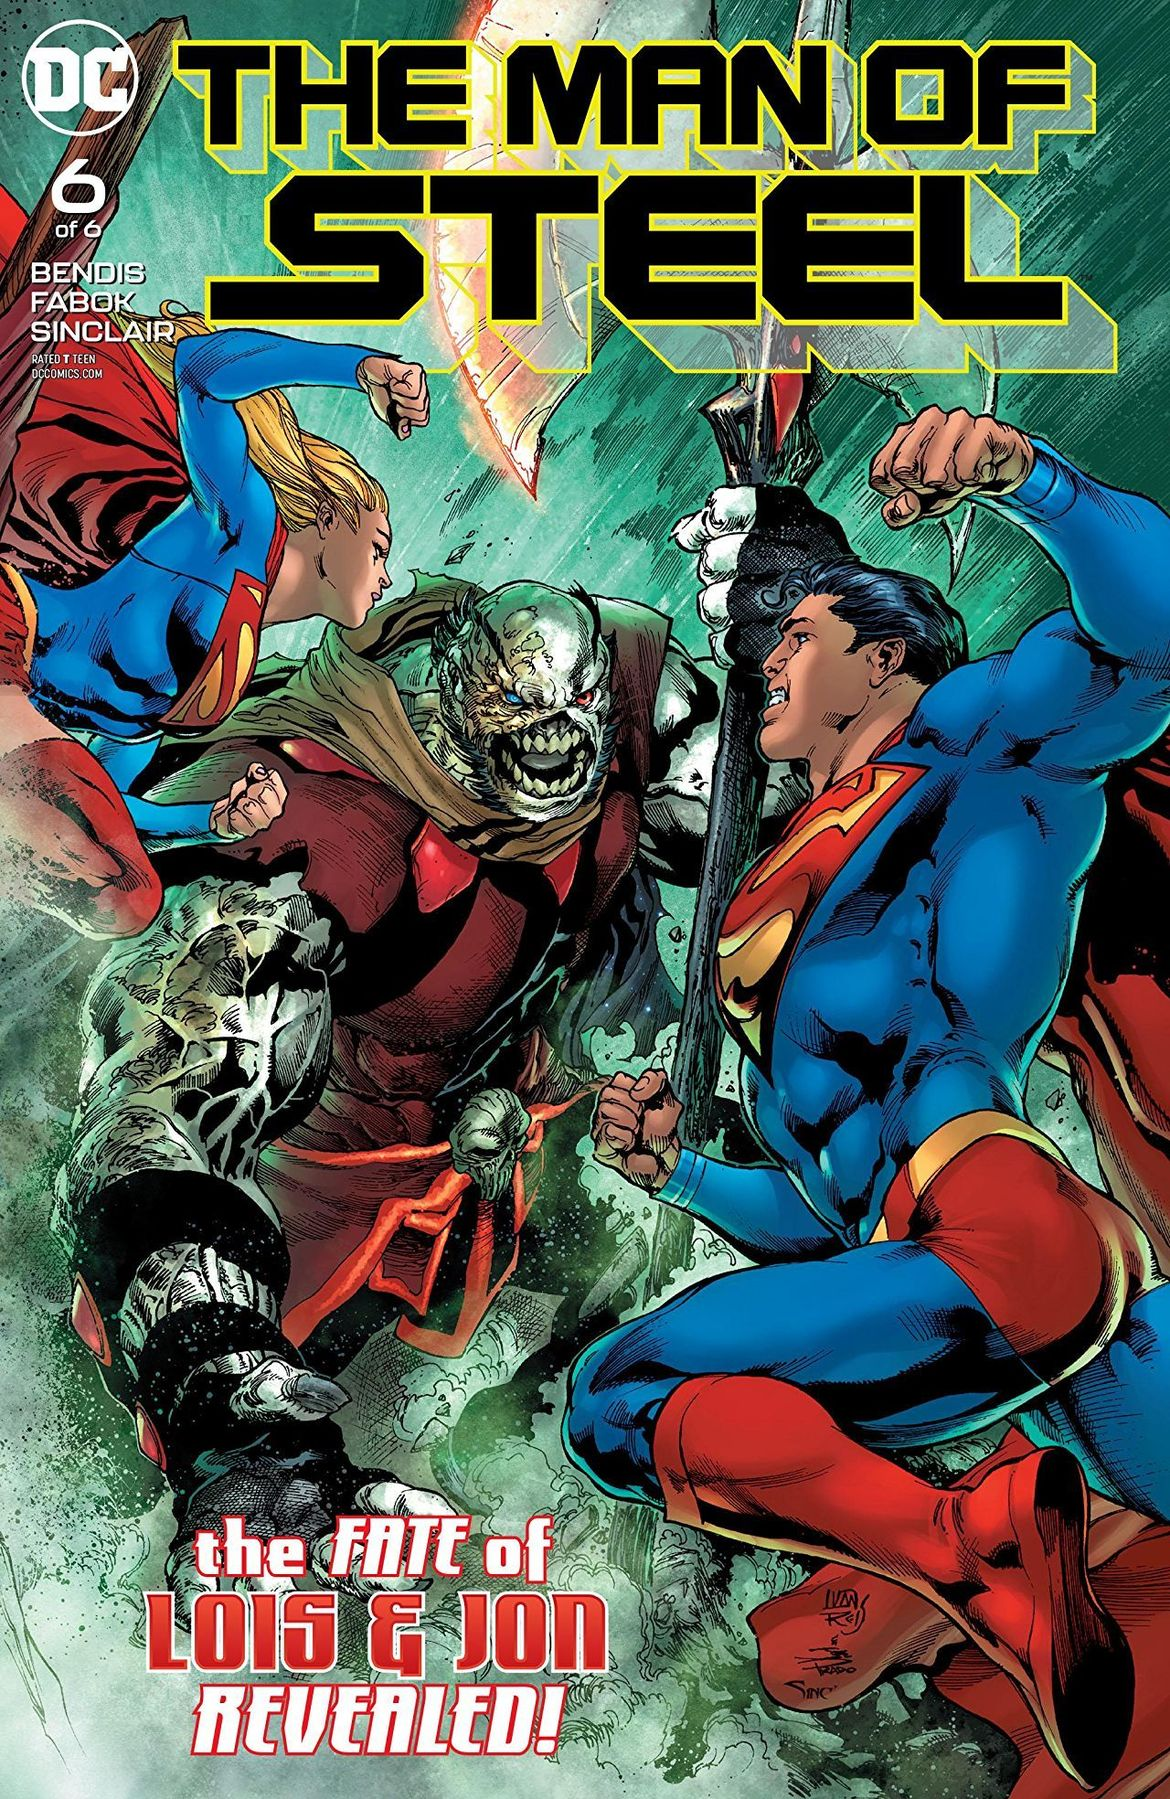 The Man of Steel #6 Cover